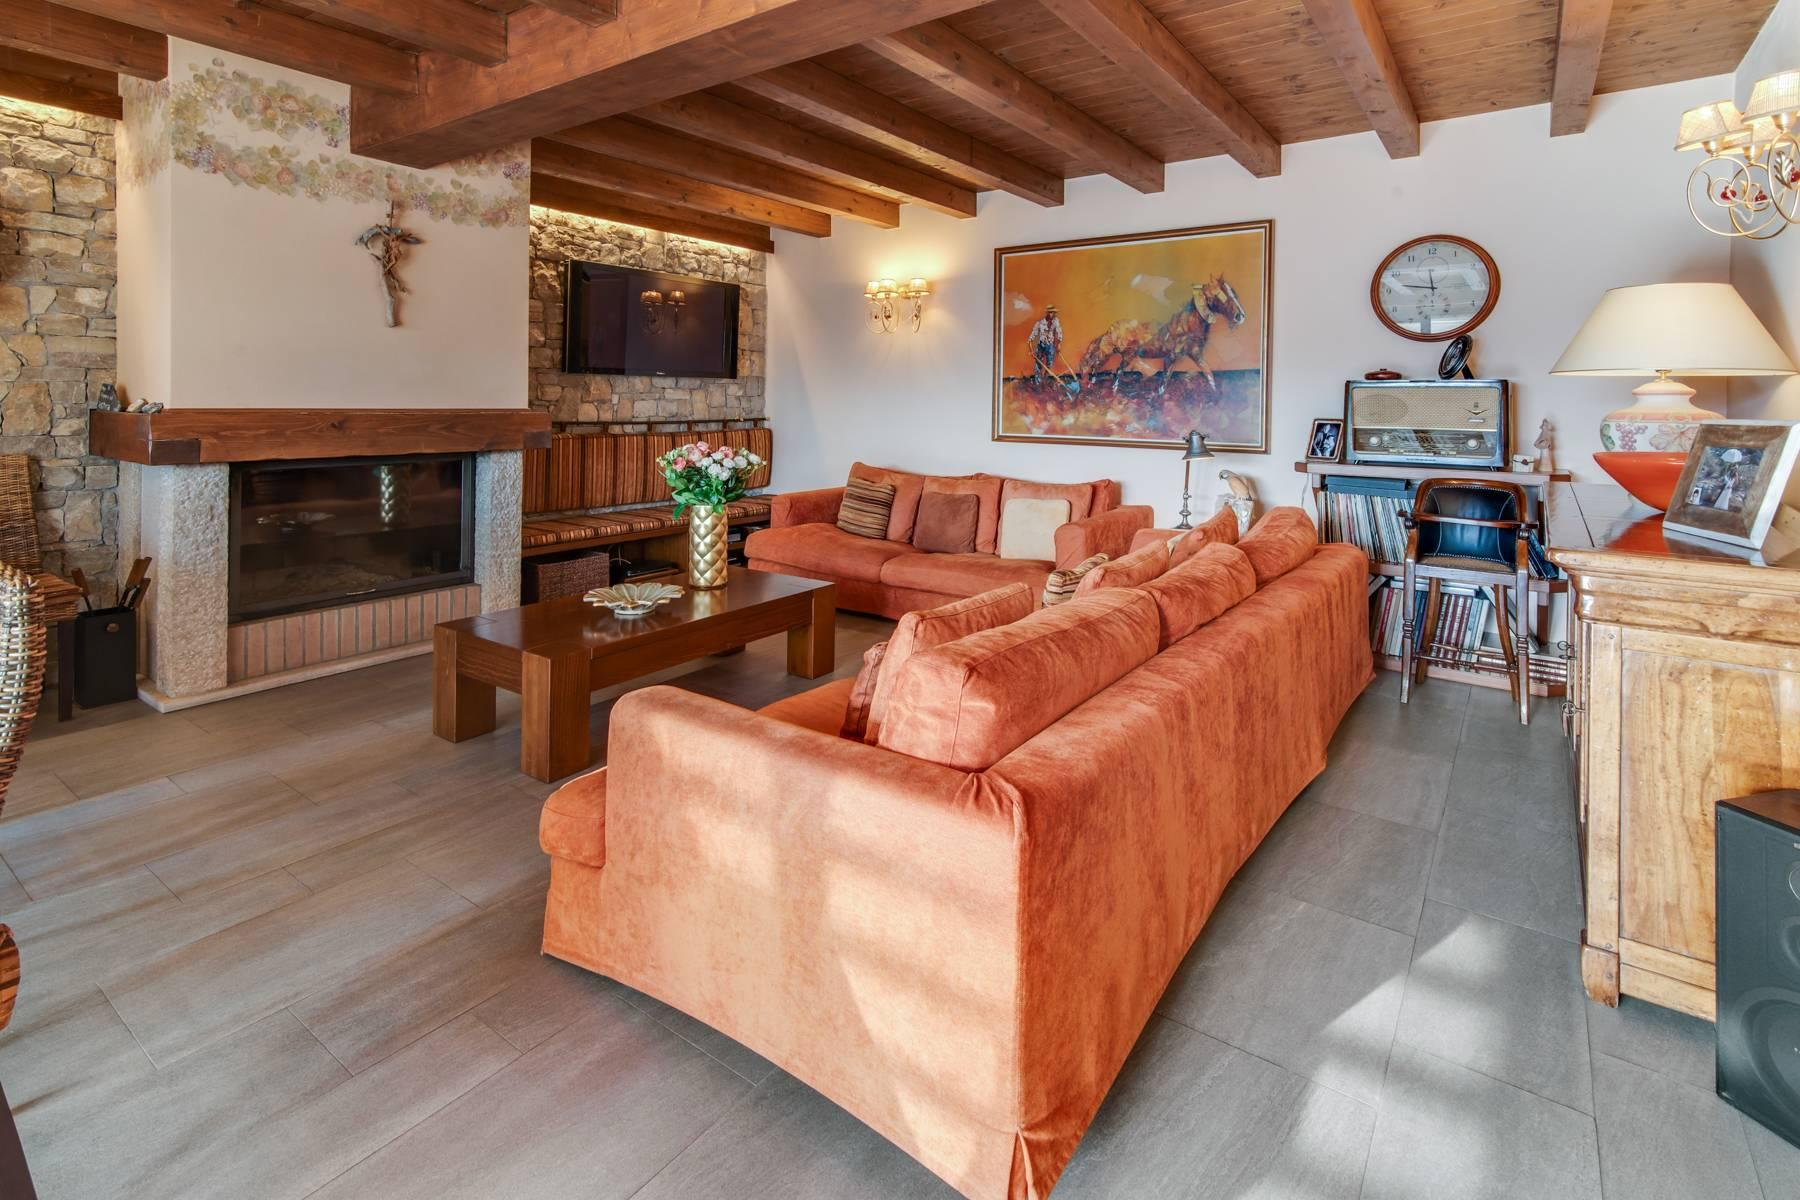 Modern villa a few minutes away from Bergamo - 4